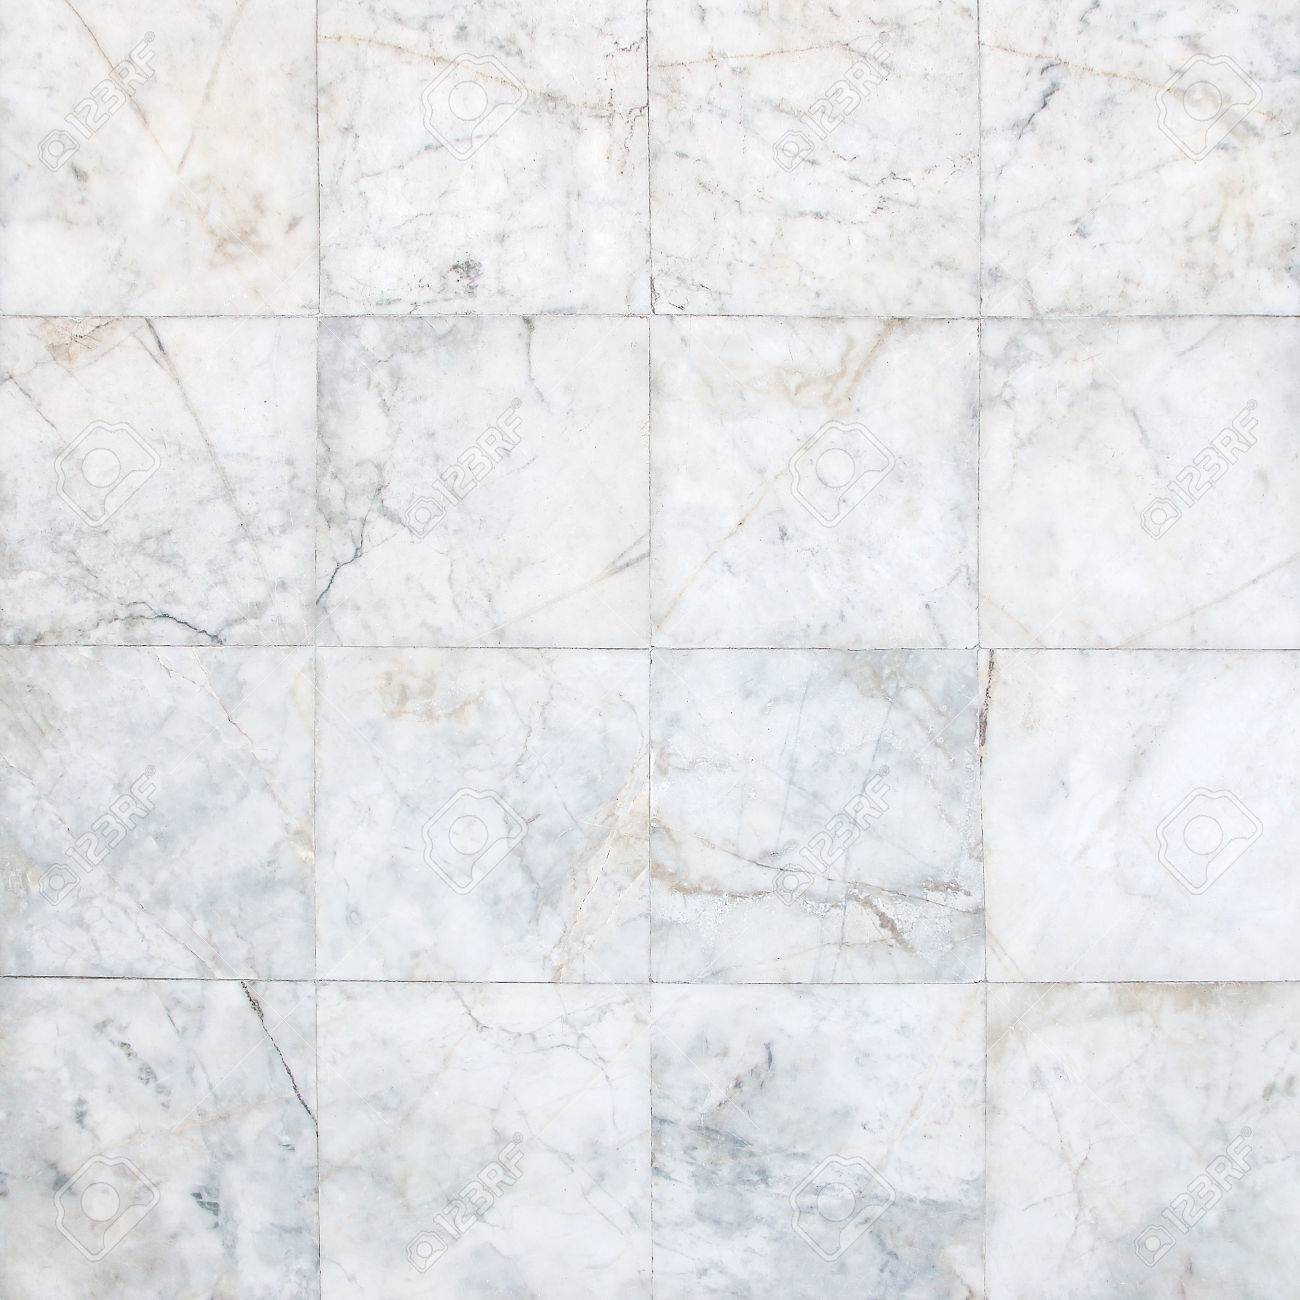 Amazing Wallpaper Marble Whatsapp - 56183056-white-marble-wall-texture-wallpaper-background-Stock-Photo  Best Photo Reference_183168.jpg